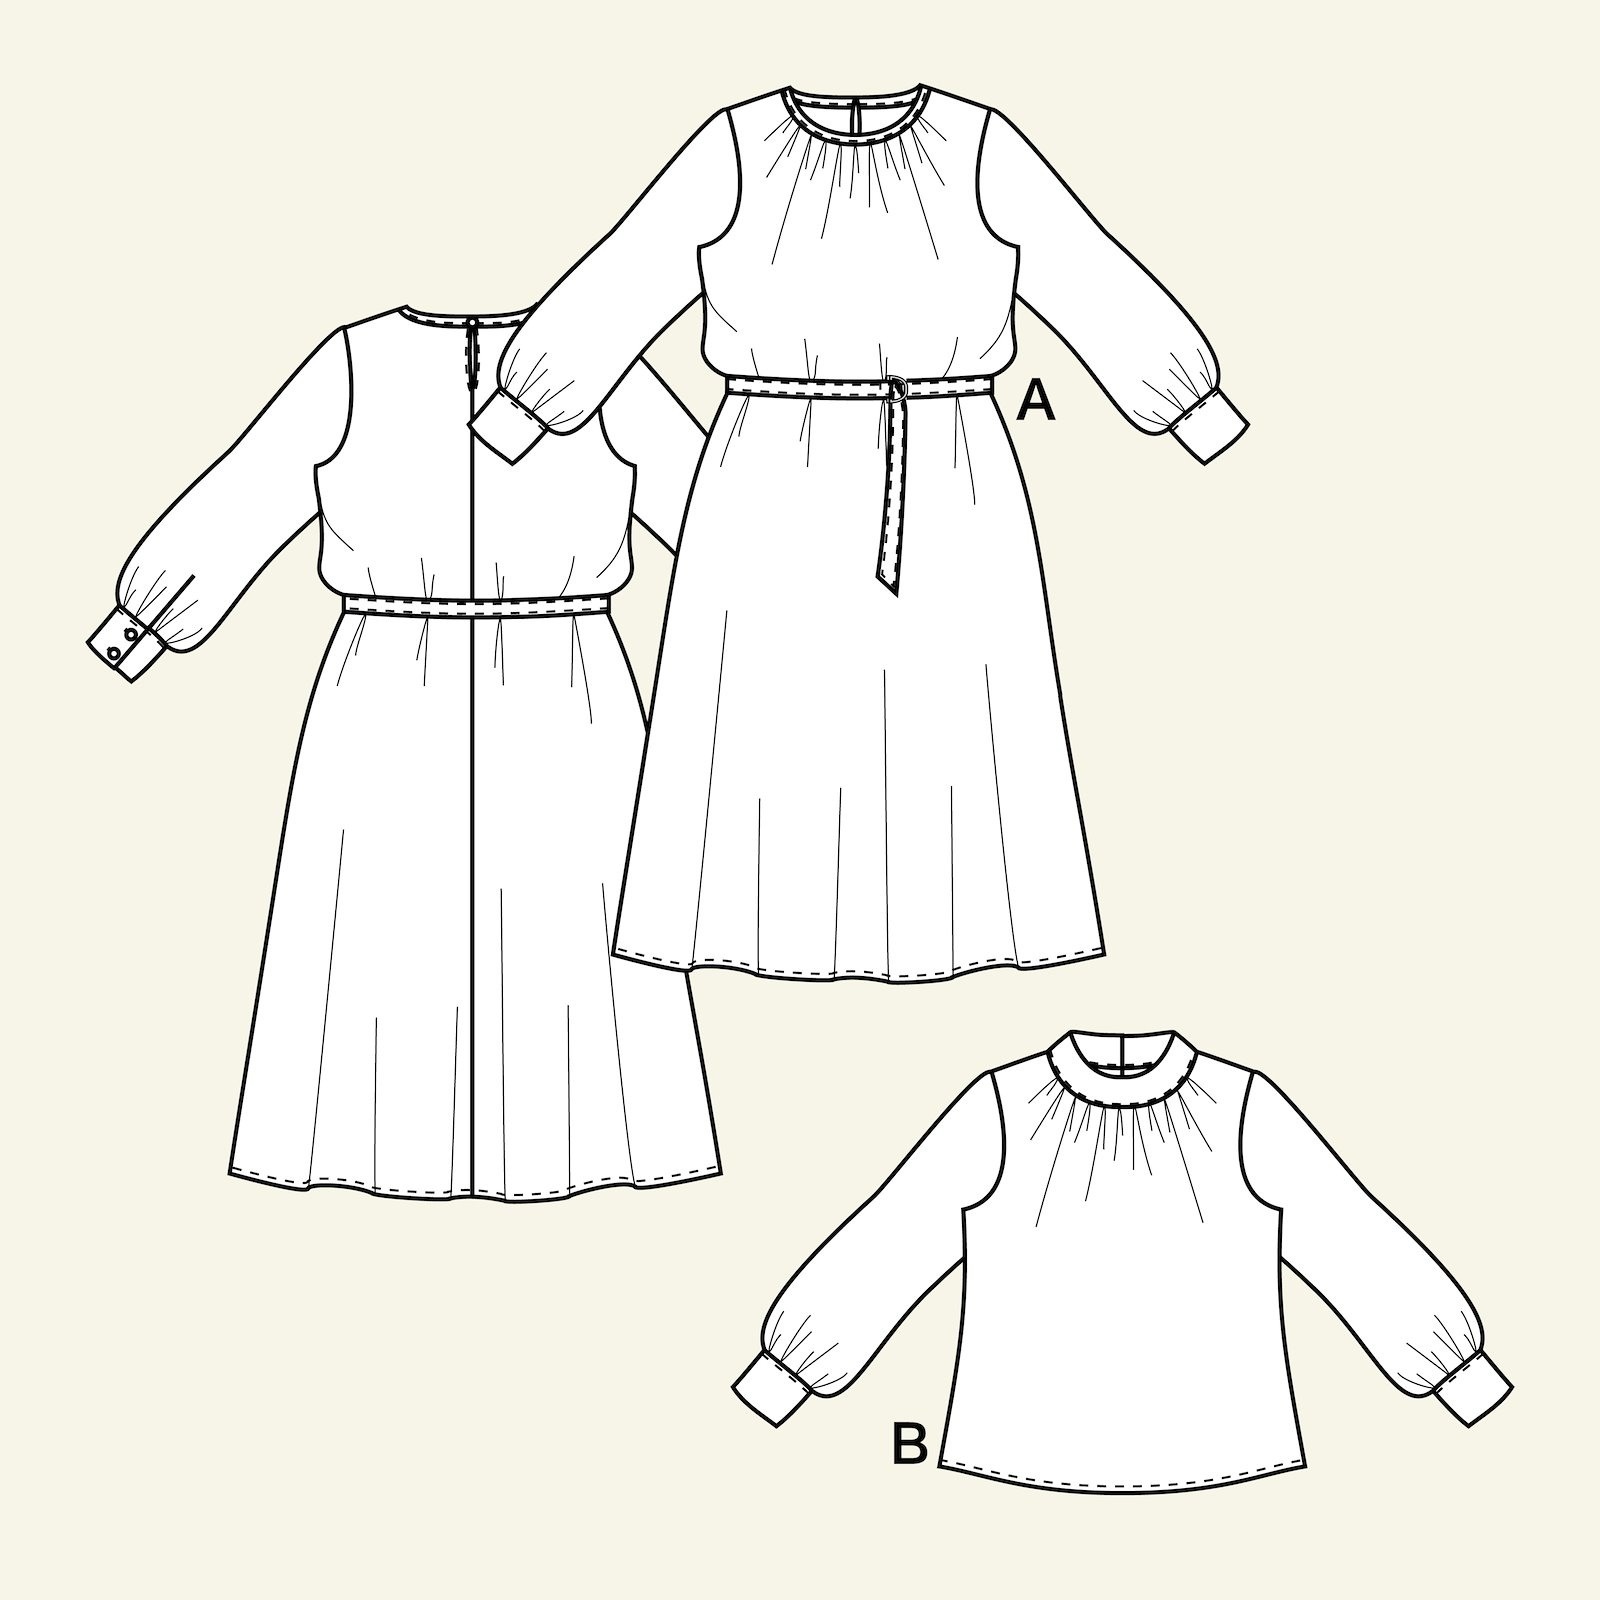 Dress and blouse with balloon sle, 46/18 p23163_pack